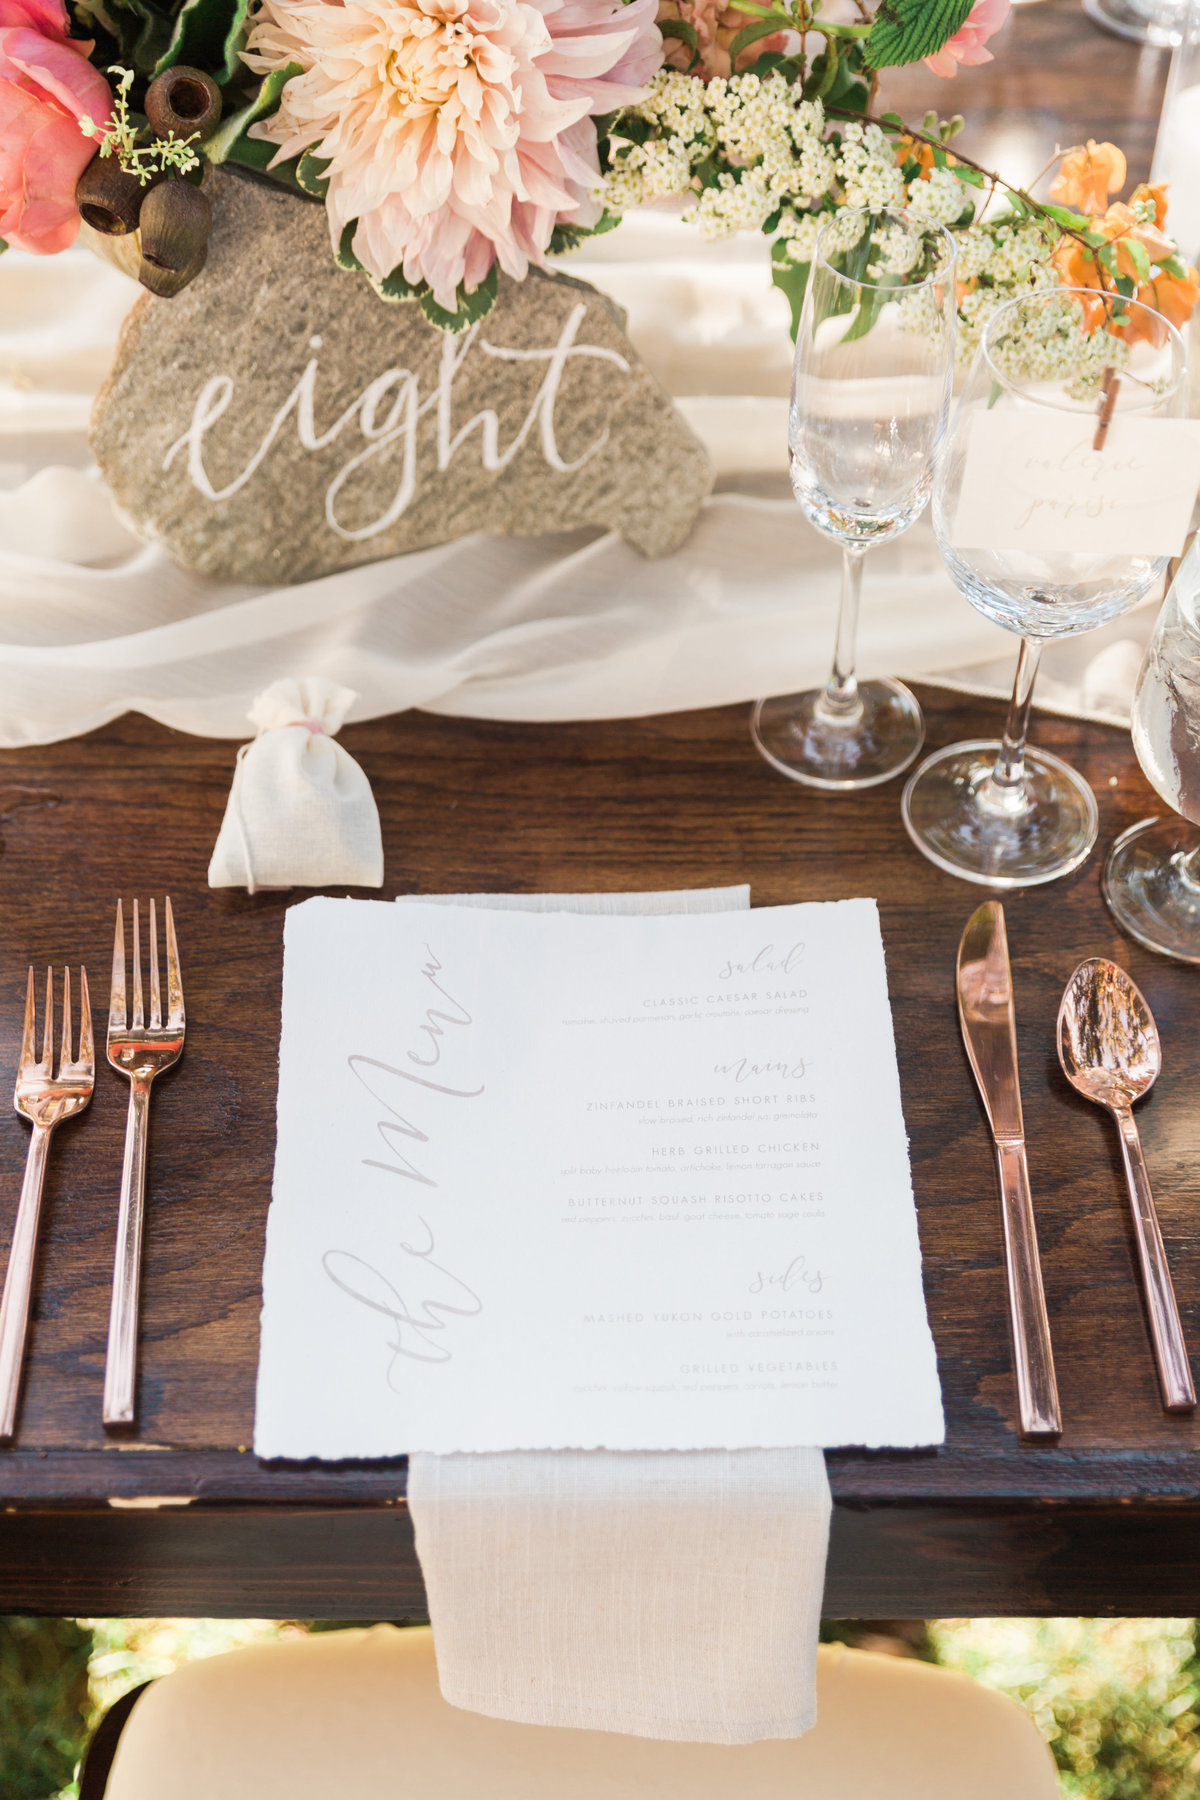 Quail_Ranch_Blush_California_Wedding_Valorie_Darling_Photography - 122 of 151